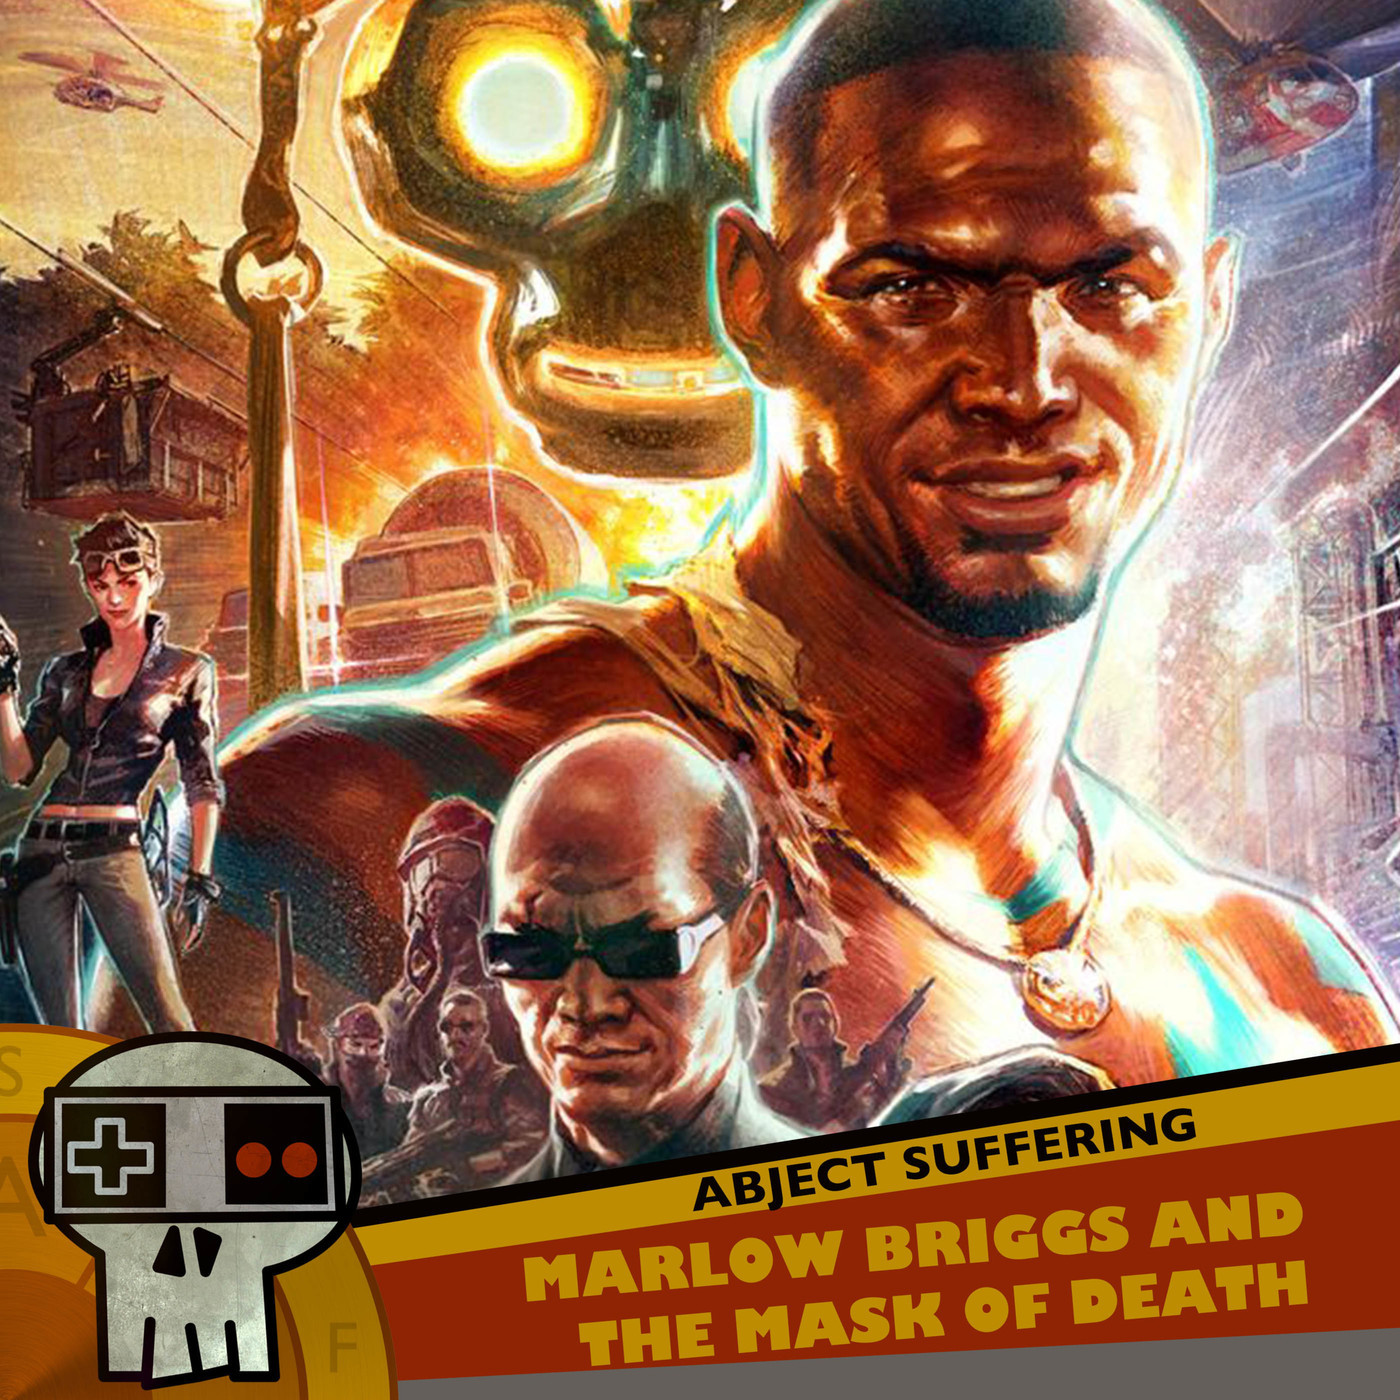 Abject Suffering 398: Marlow Briggs and the Mask of Death